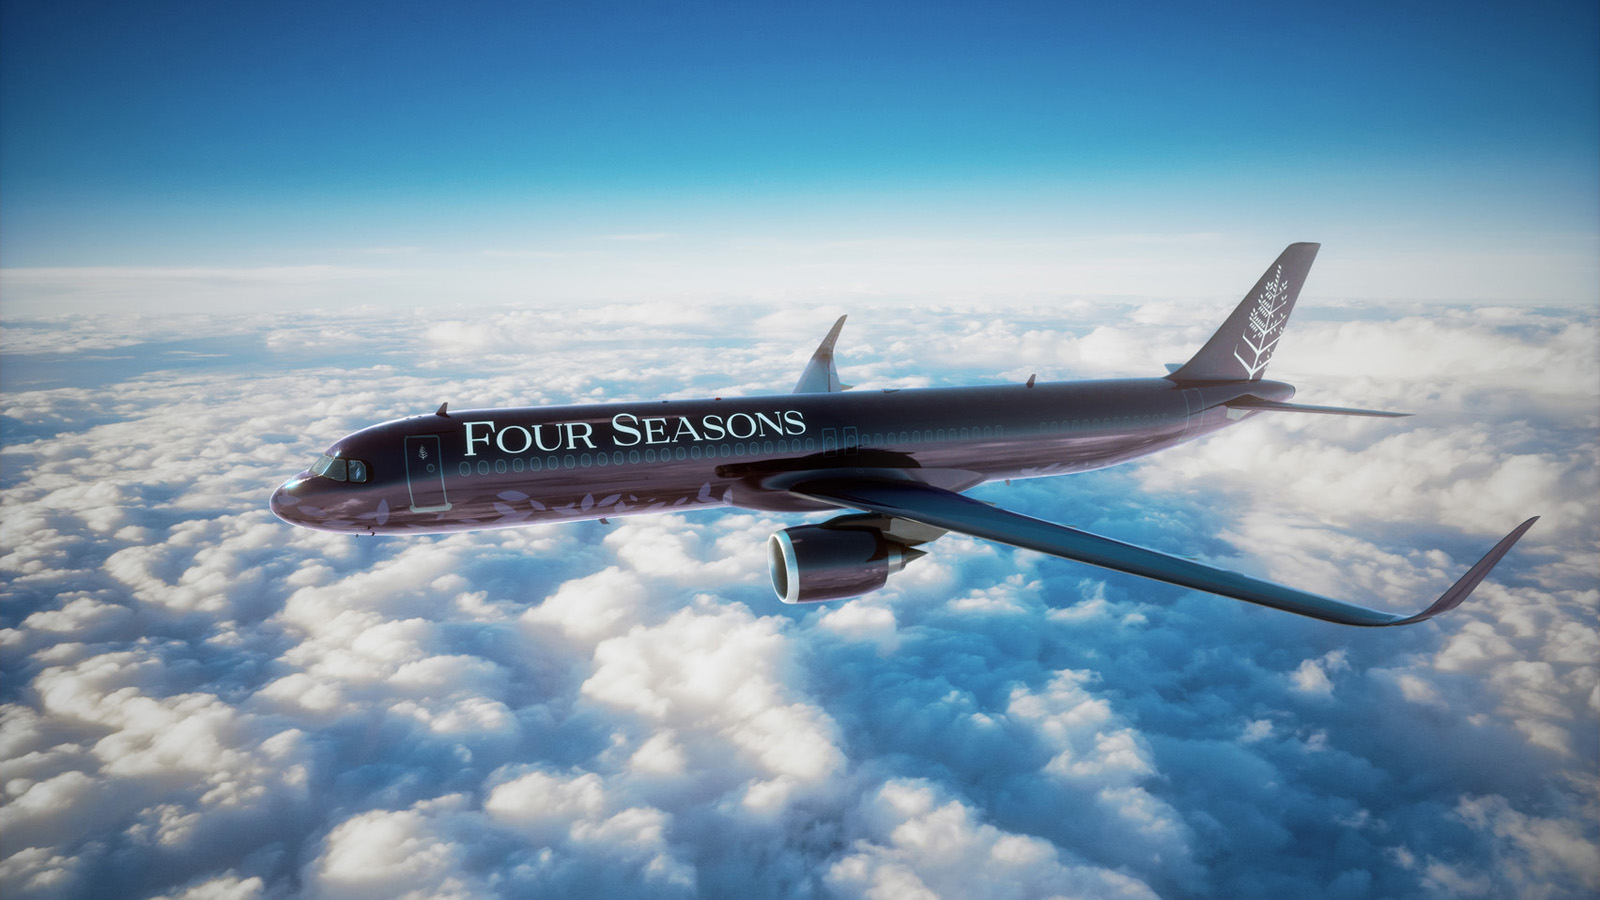 Four Seasons private jet A321neo